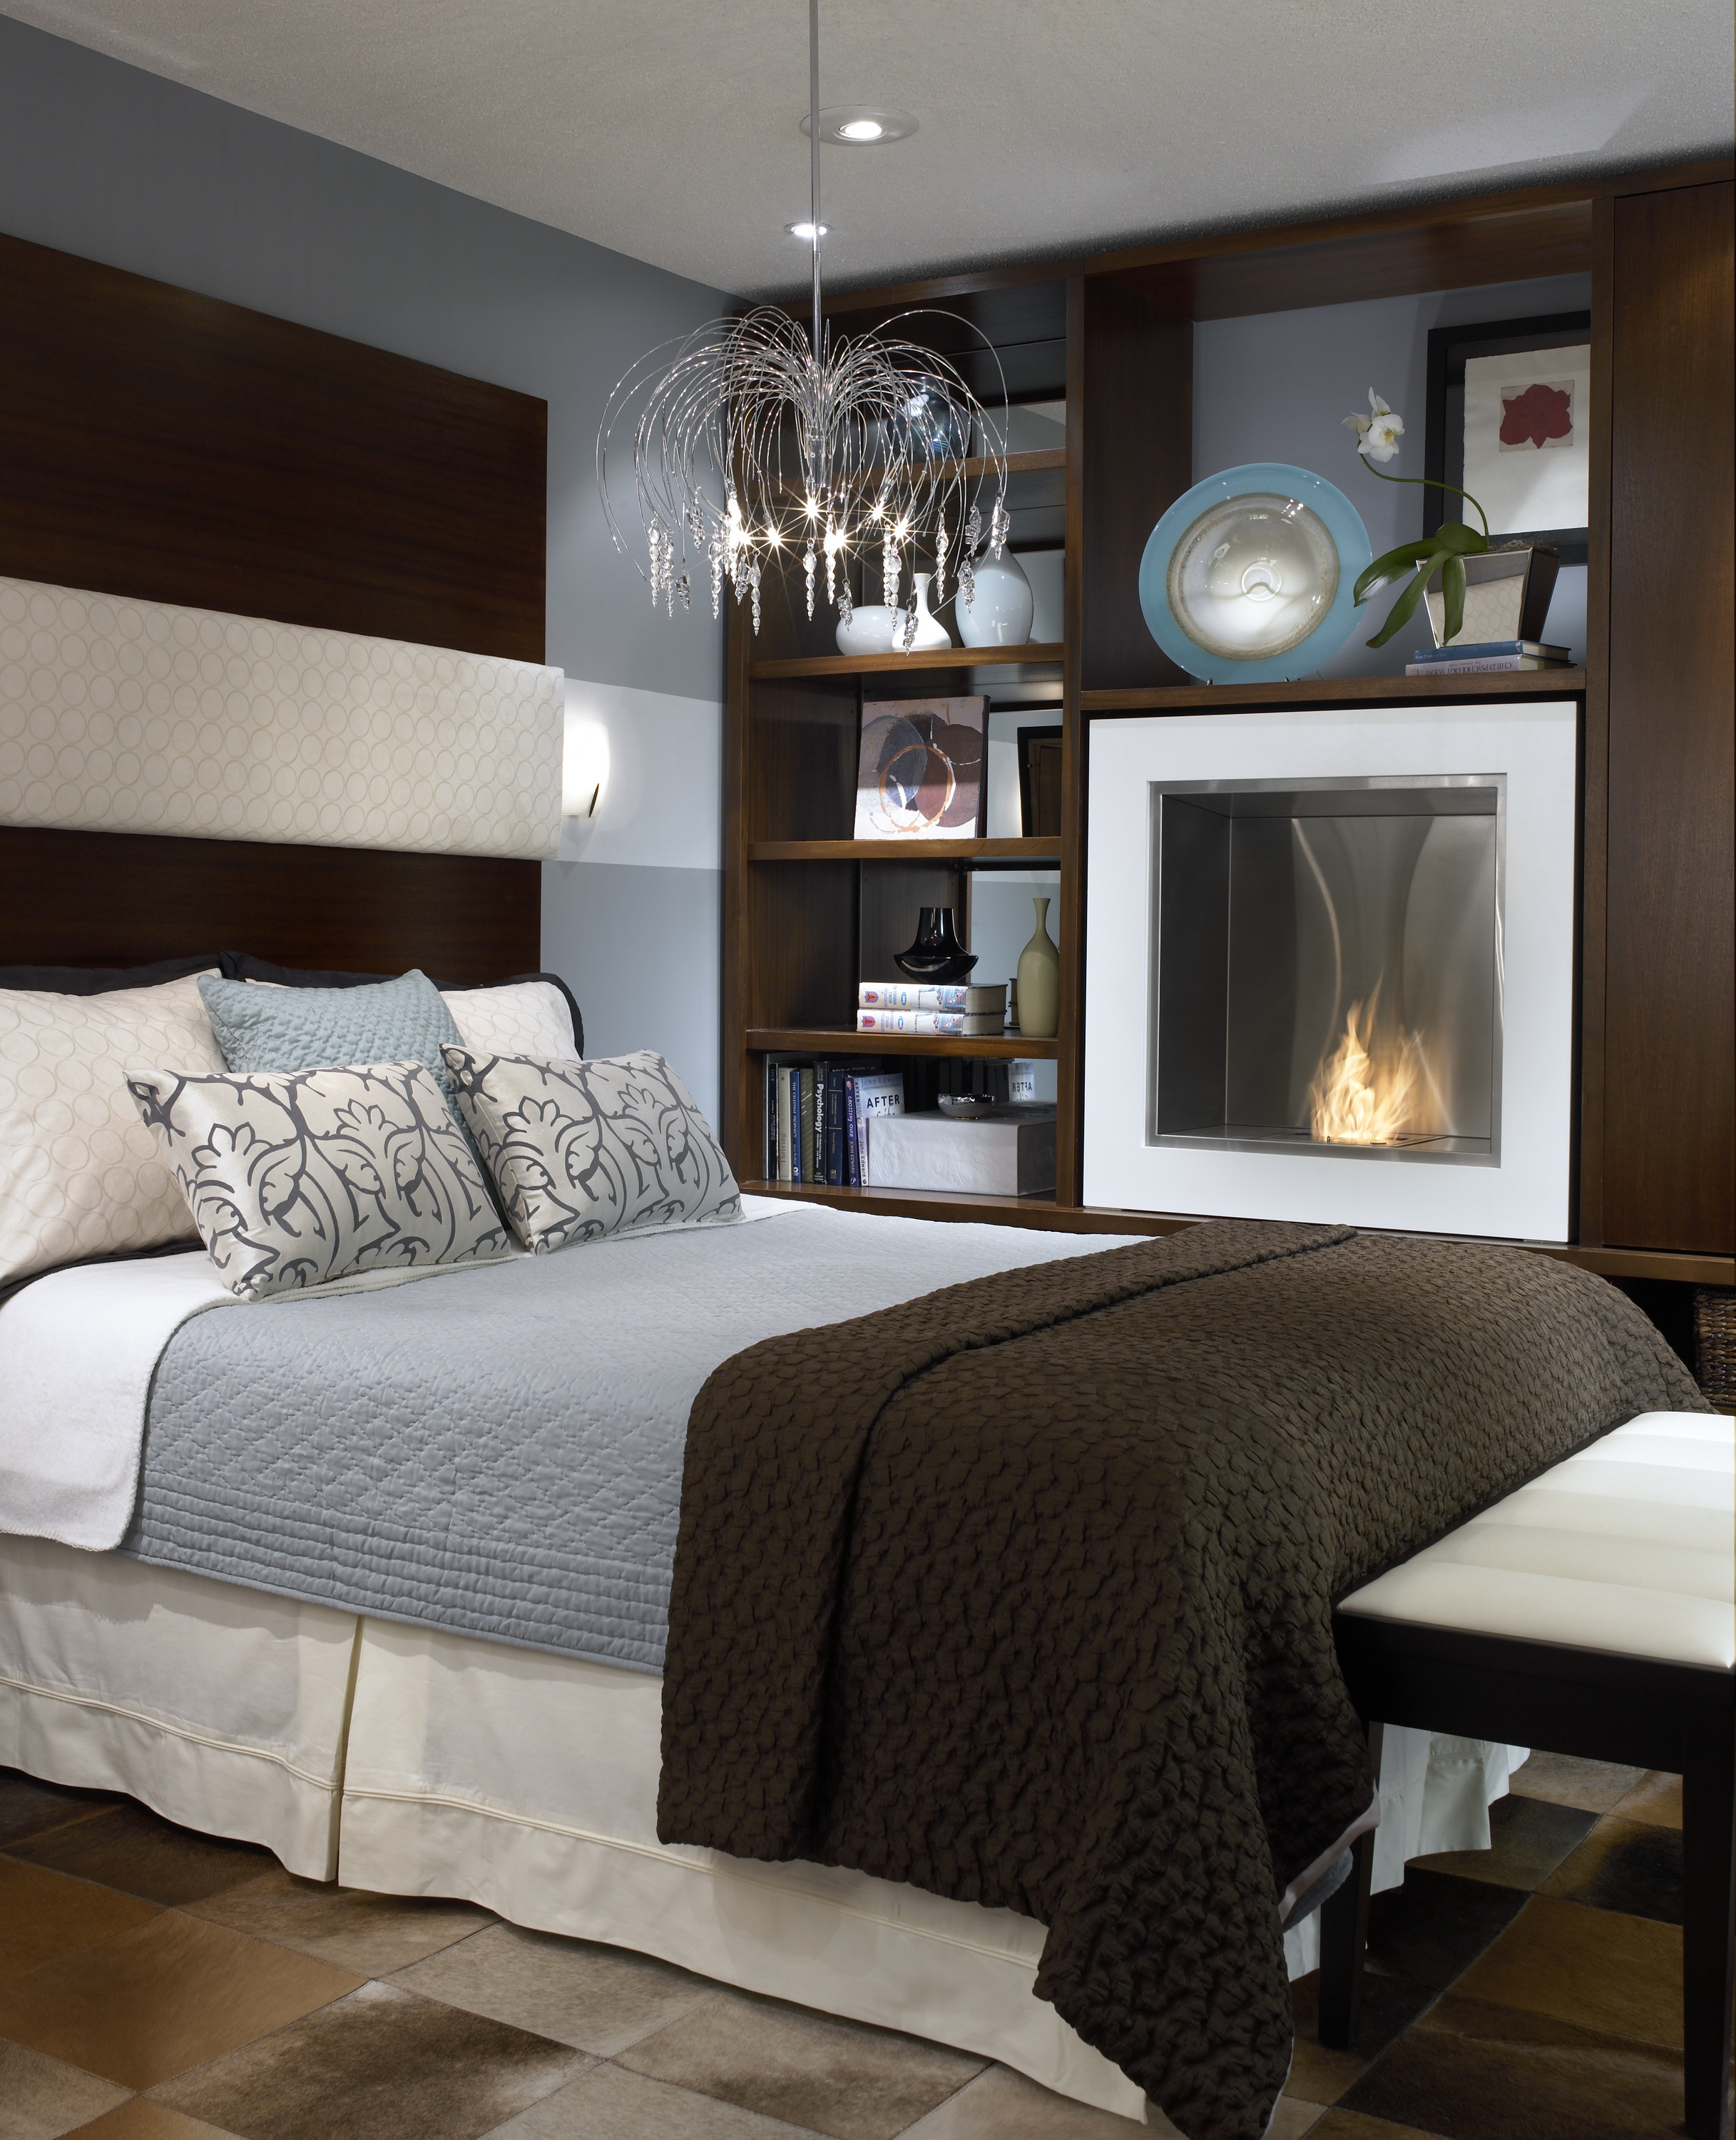 Bedroom Tips From Candice Olson From Beddingstyle.com